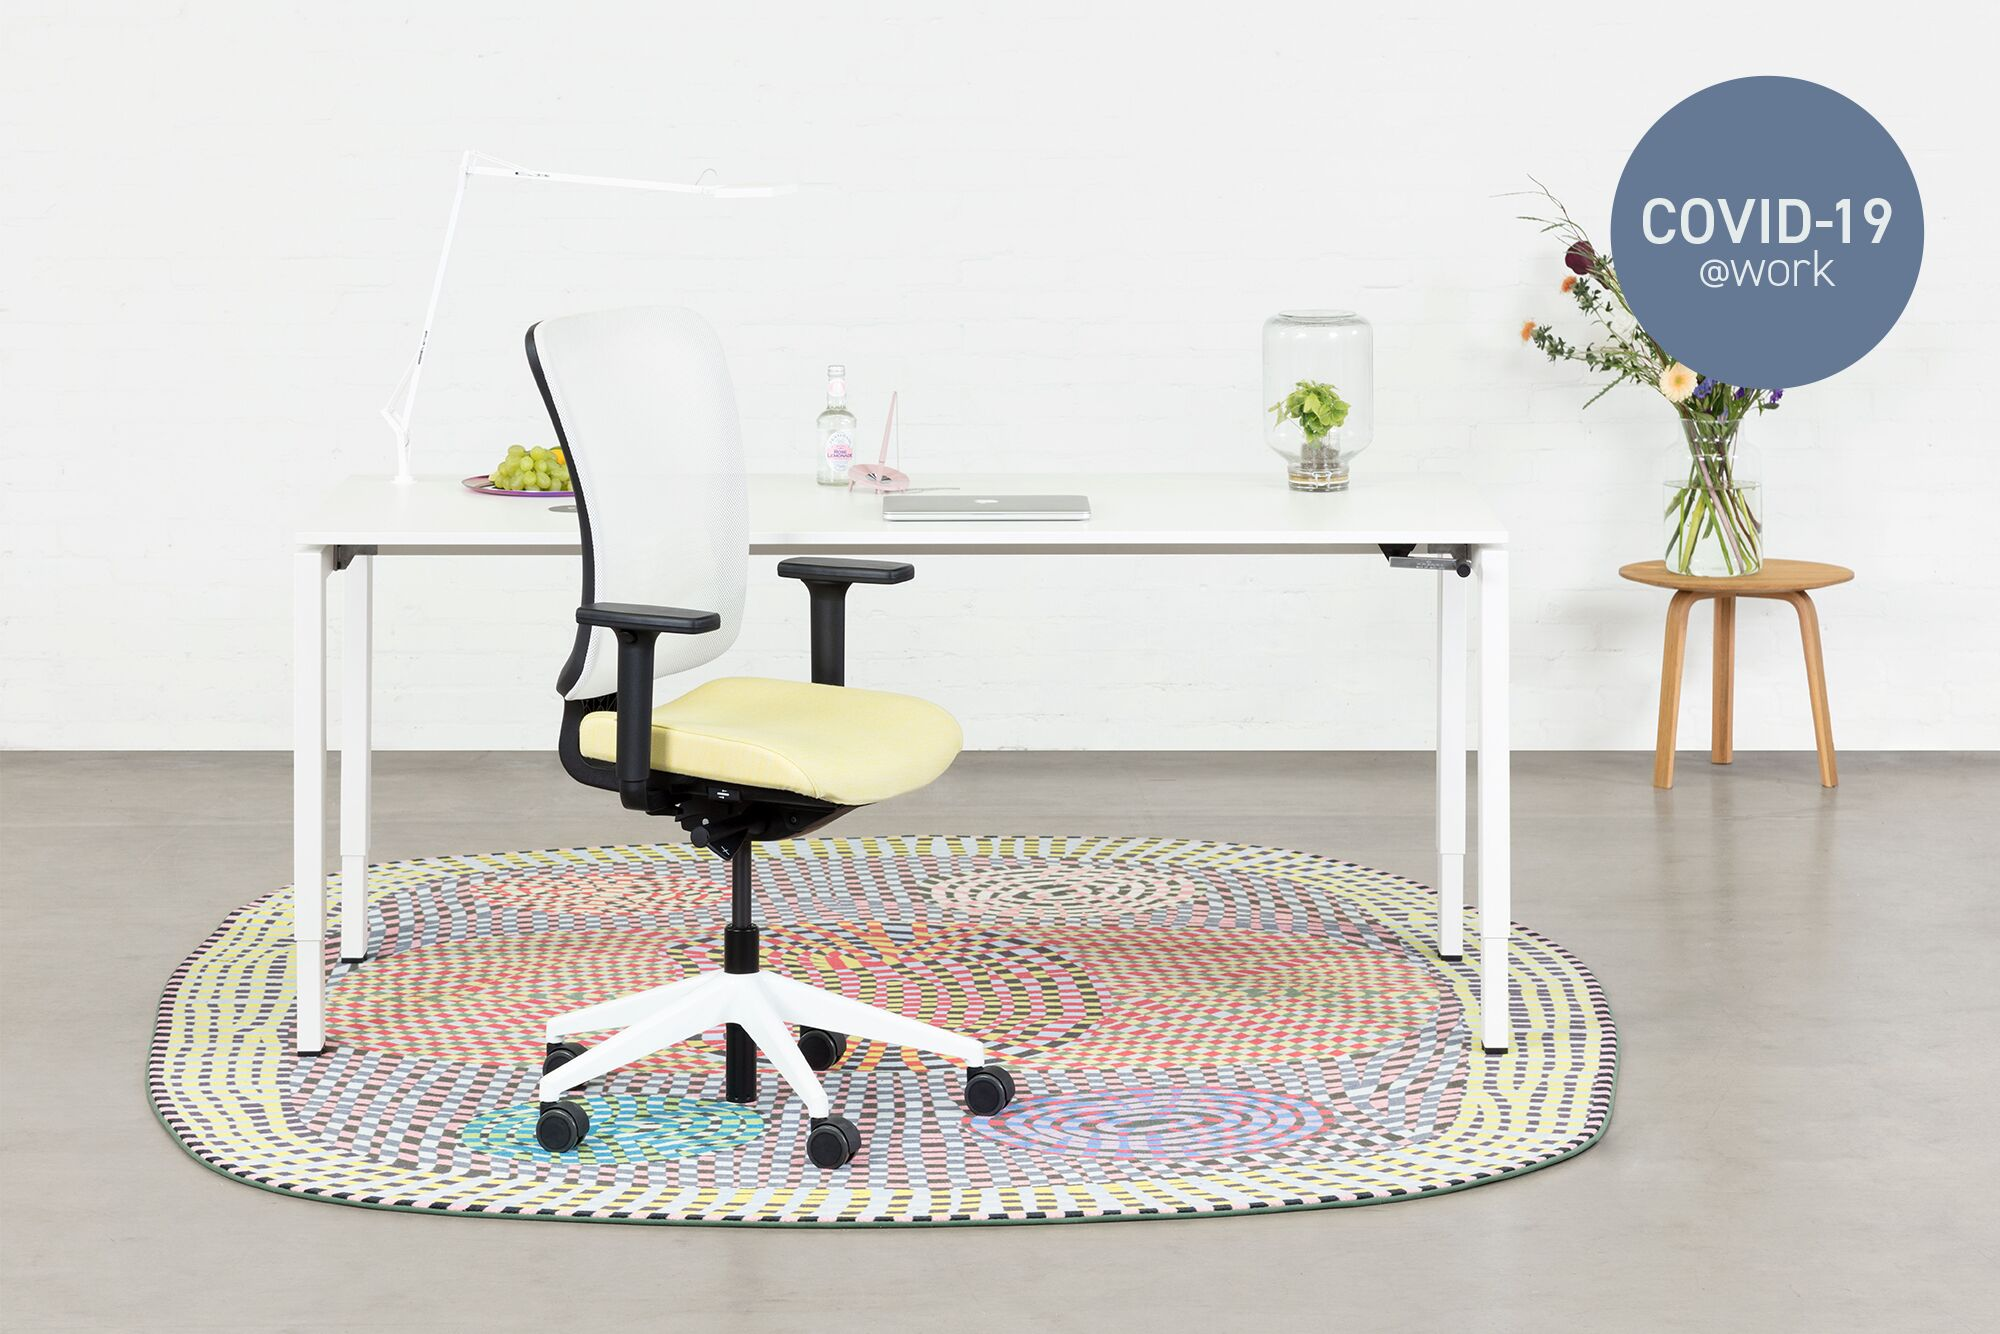 Large Royal Ahrend Balance 4 leg in white with yellow and white SQALA office chair with karpet front view with Covid 19 label